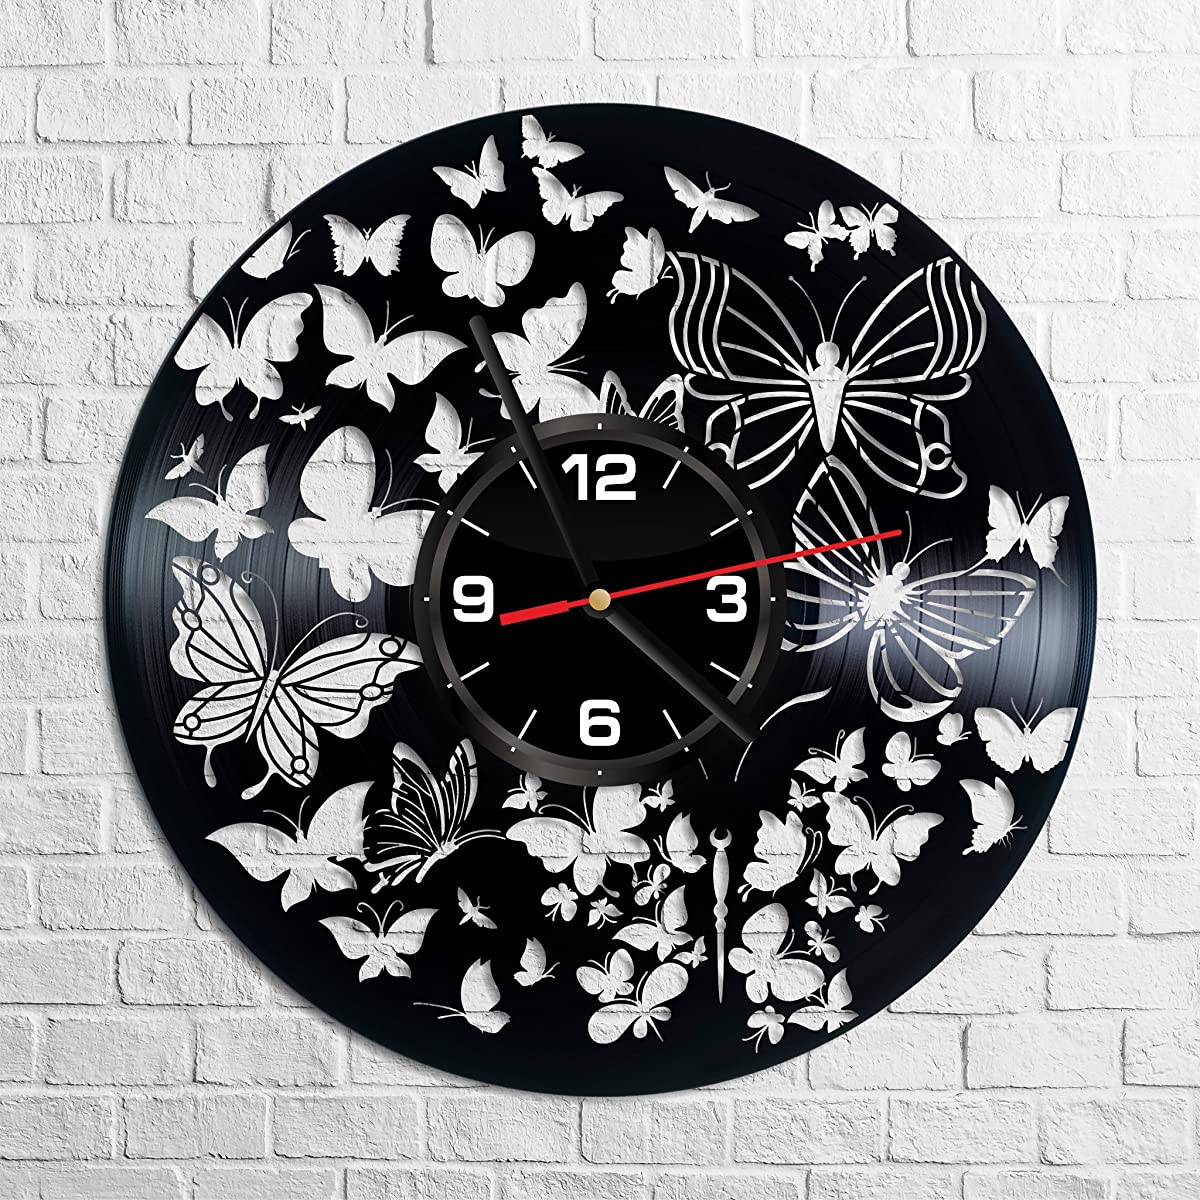 Butterfly Wall Clock Made of Vintage Vinyl Records - Stylish clock and Amazing Gifts Idea – Unique Home Decor – Personalized Presents for Men Women Kids – Living Room Bedroom Art – Handmade 12 Inches